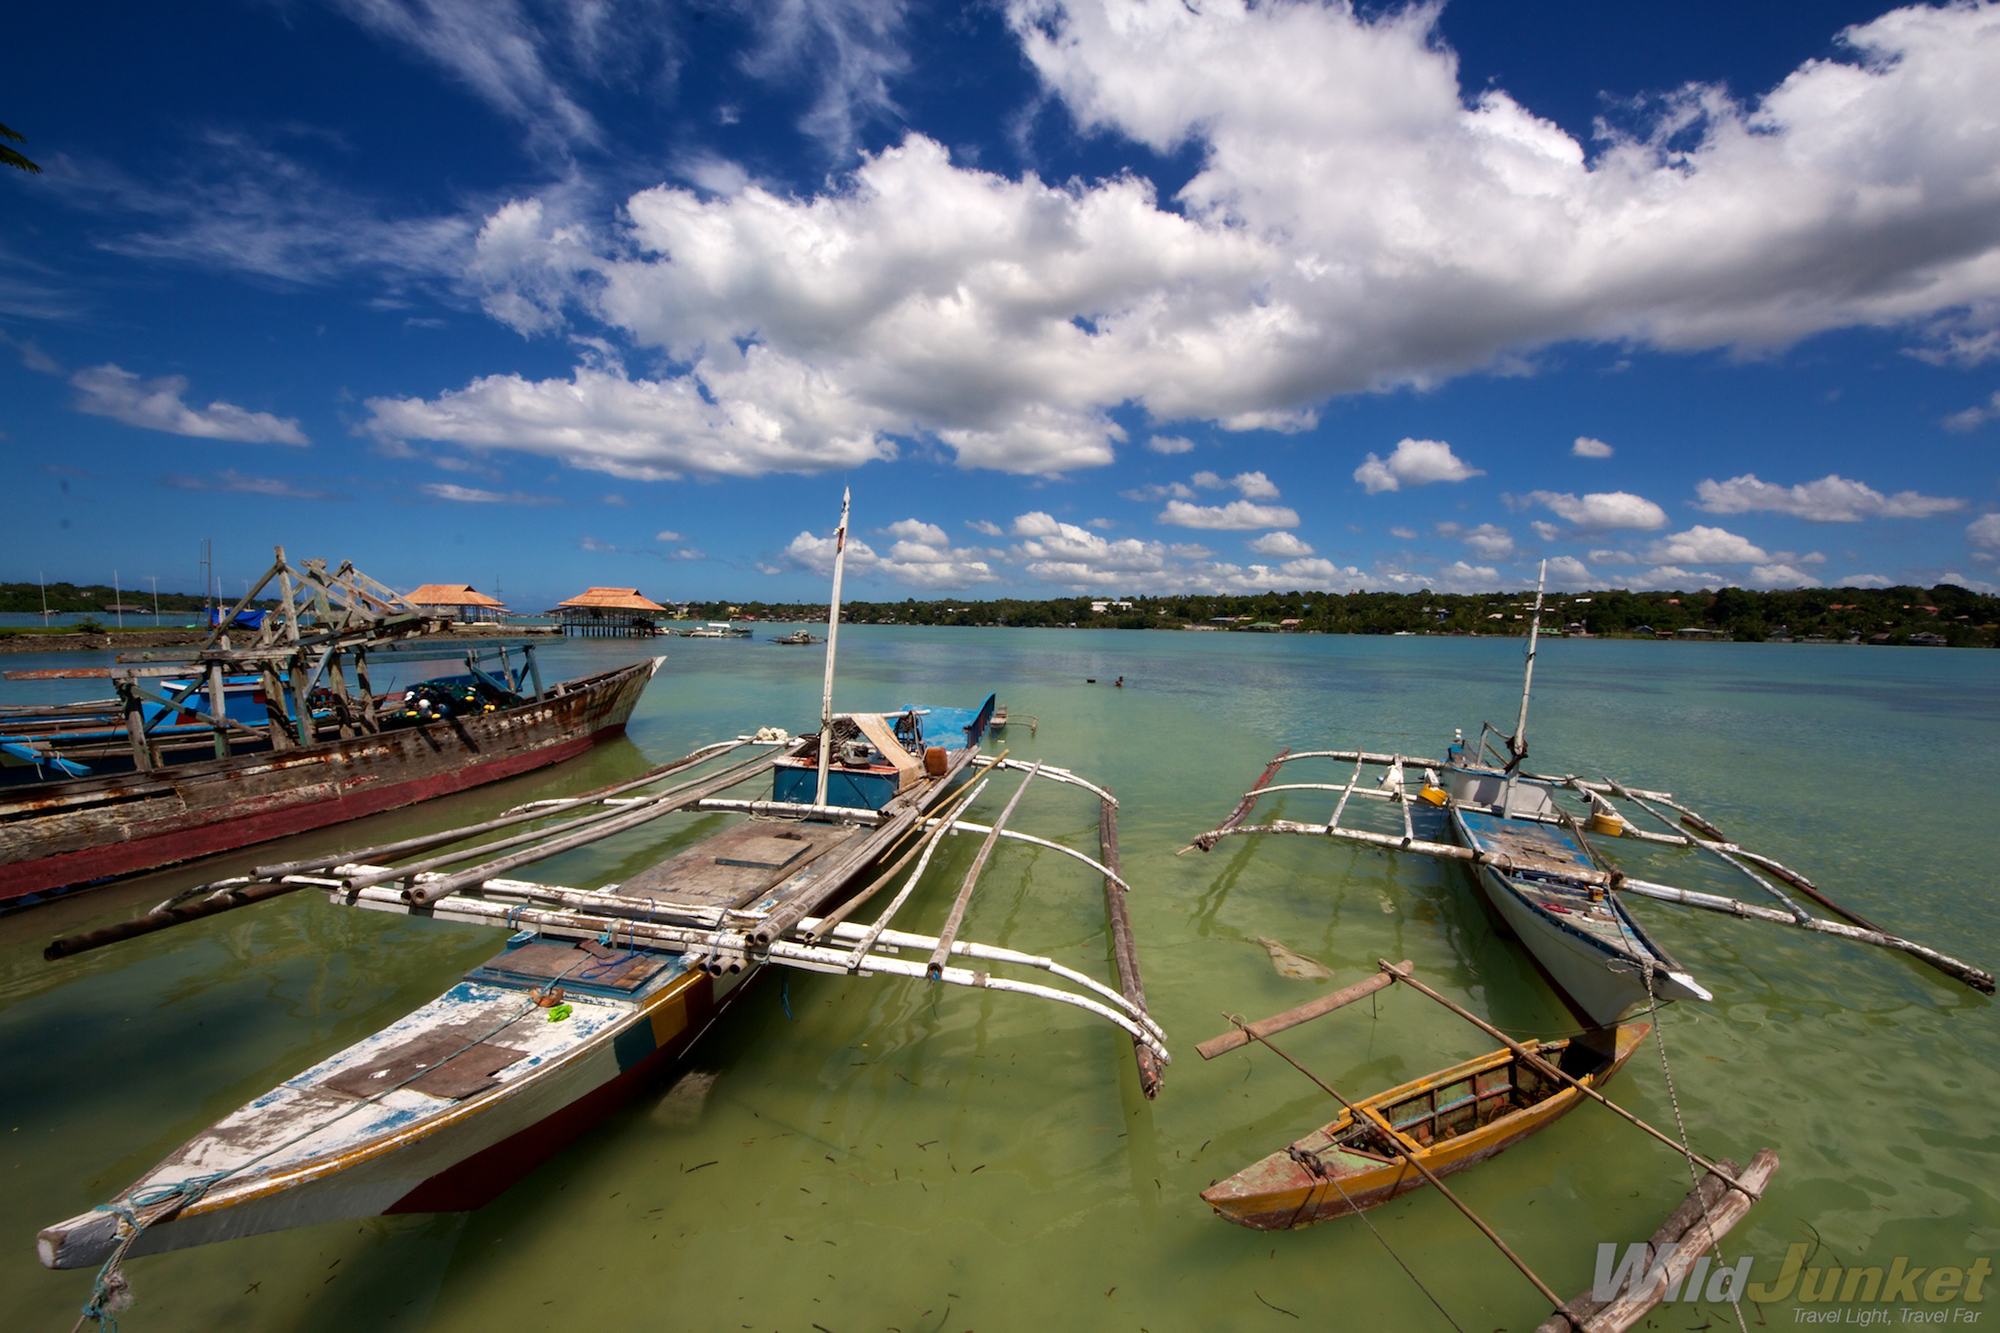 Fishing boats in Bohol.